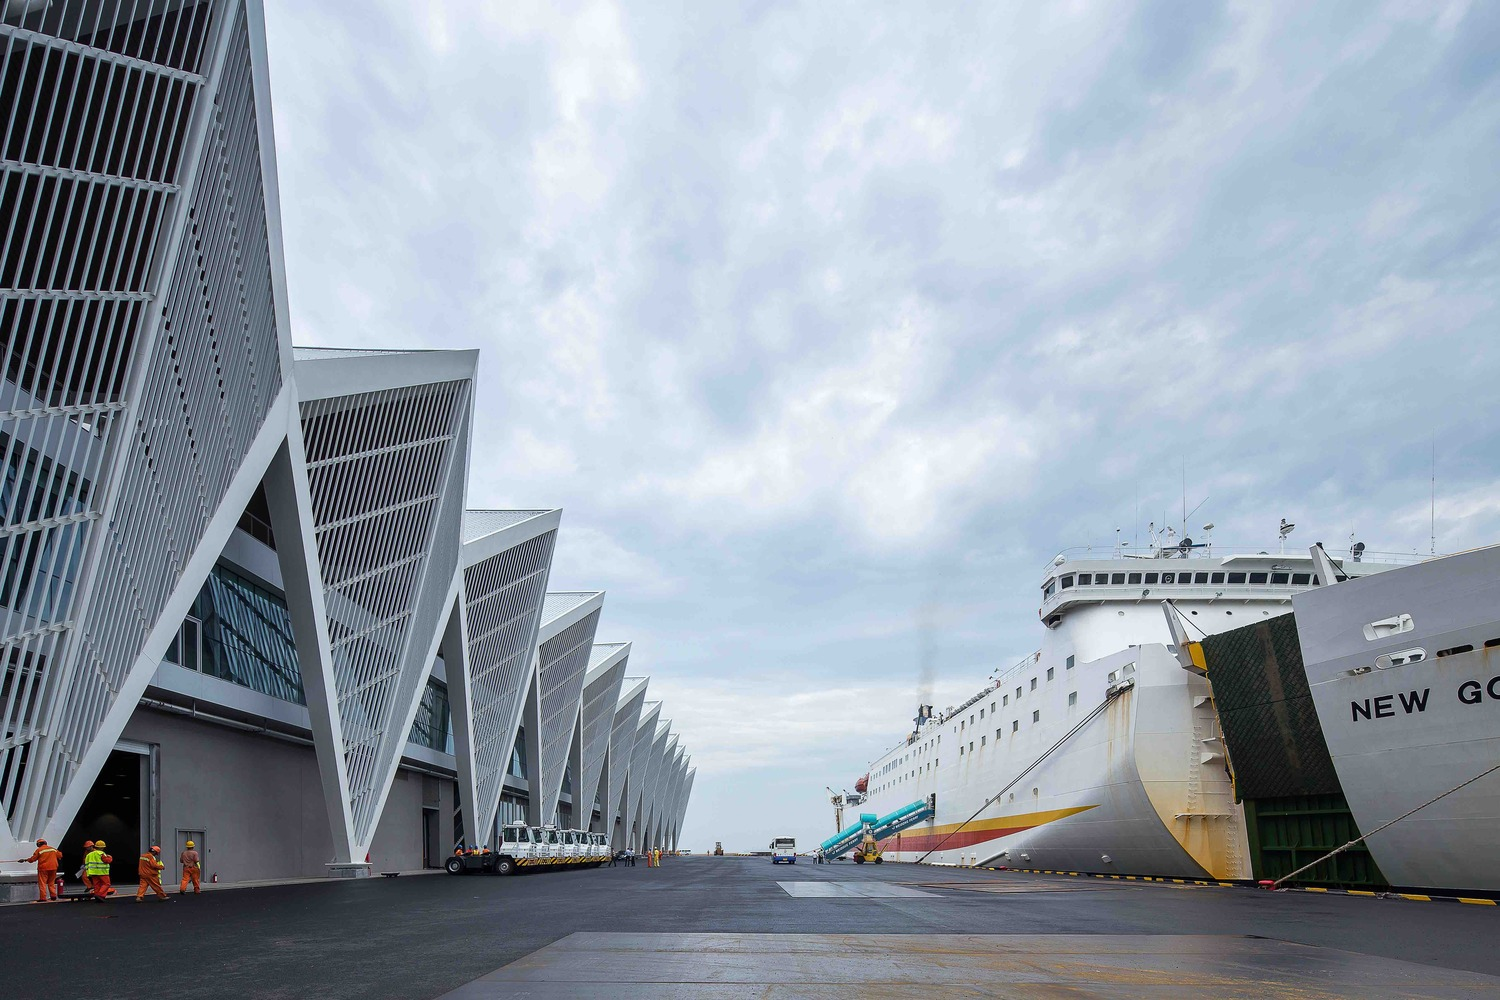 Qingdao Cruise Terminal By Ccdi Mozhao Studio Amp Jing Studio Archiscene Your Daily